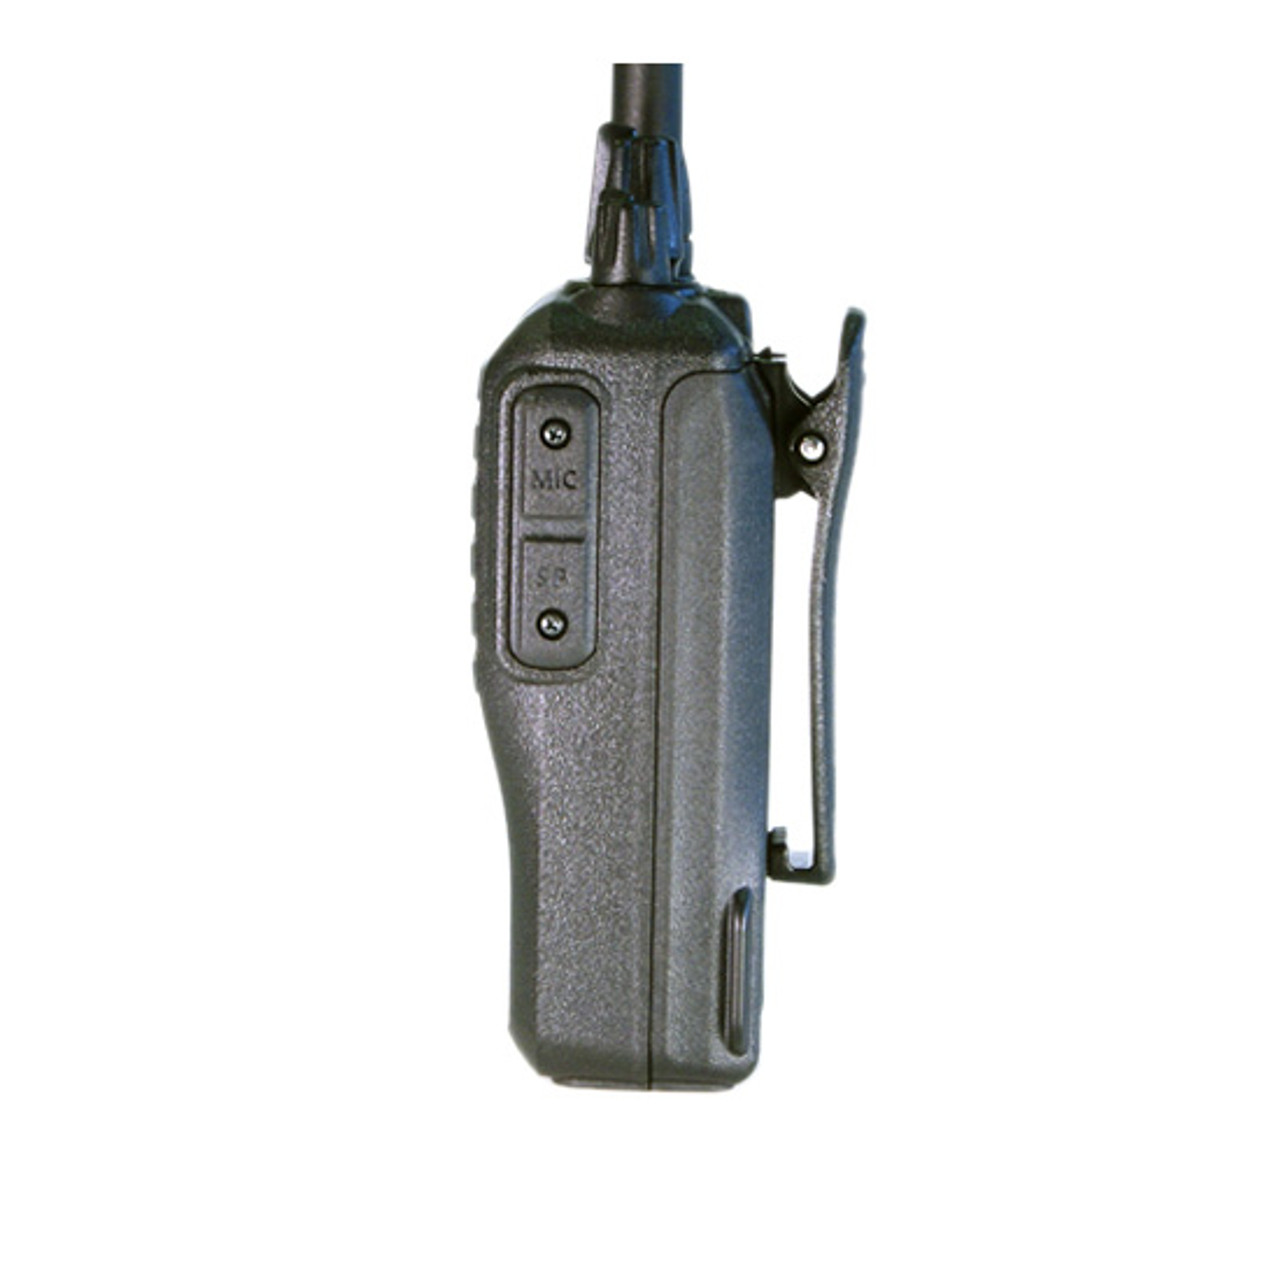 ICOM F4001 43 RC two way radios are covered by a two year warranty